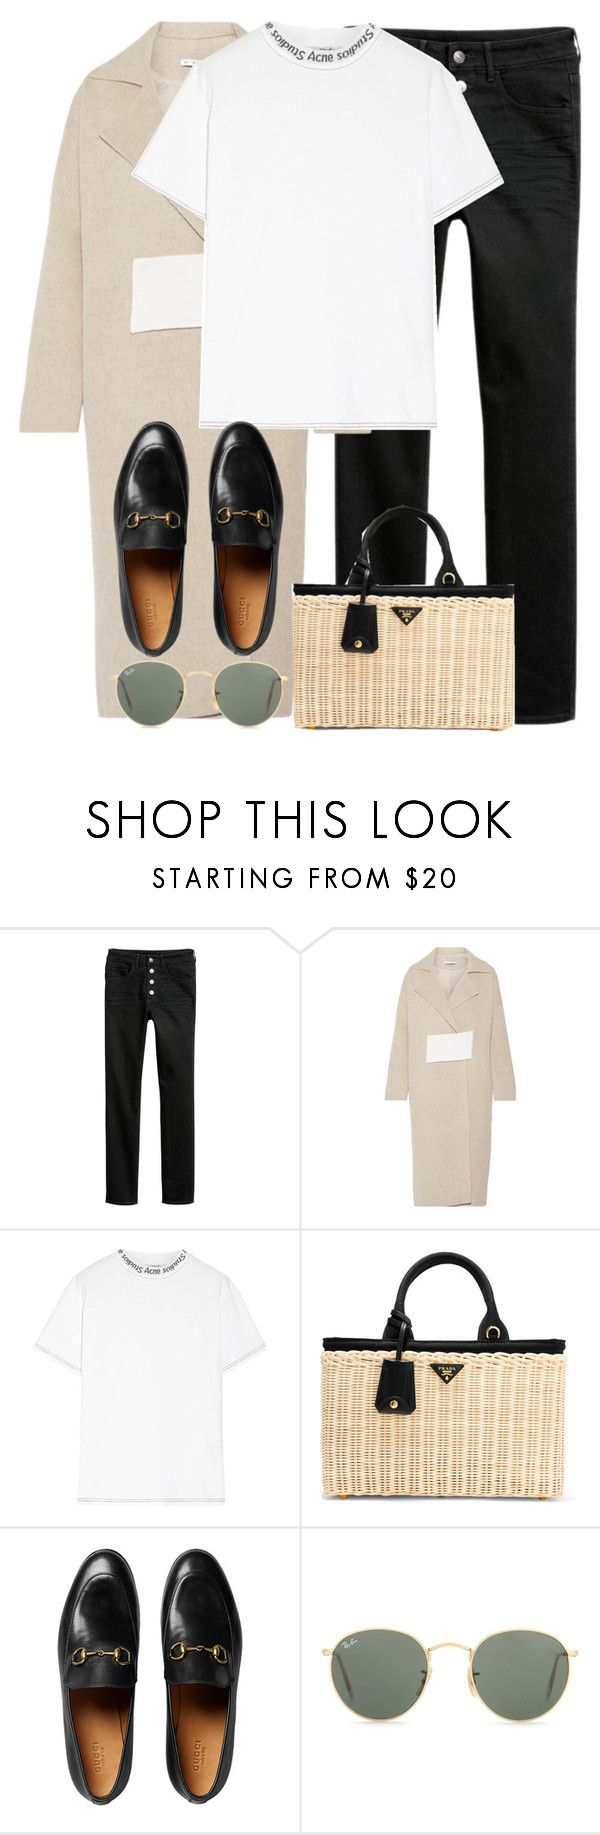 """""""Untitled #3341"""" by elenaday on Polyvore featuring Rejina Pyo, Acne Studios, Prada, Gucci and Ray-Ban"""